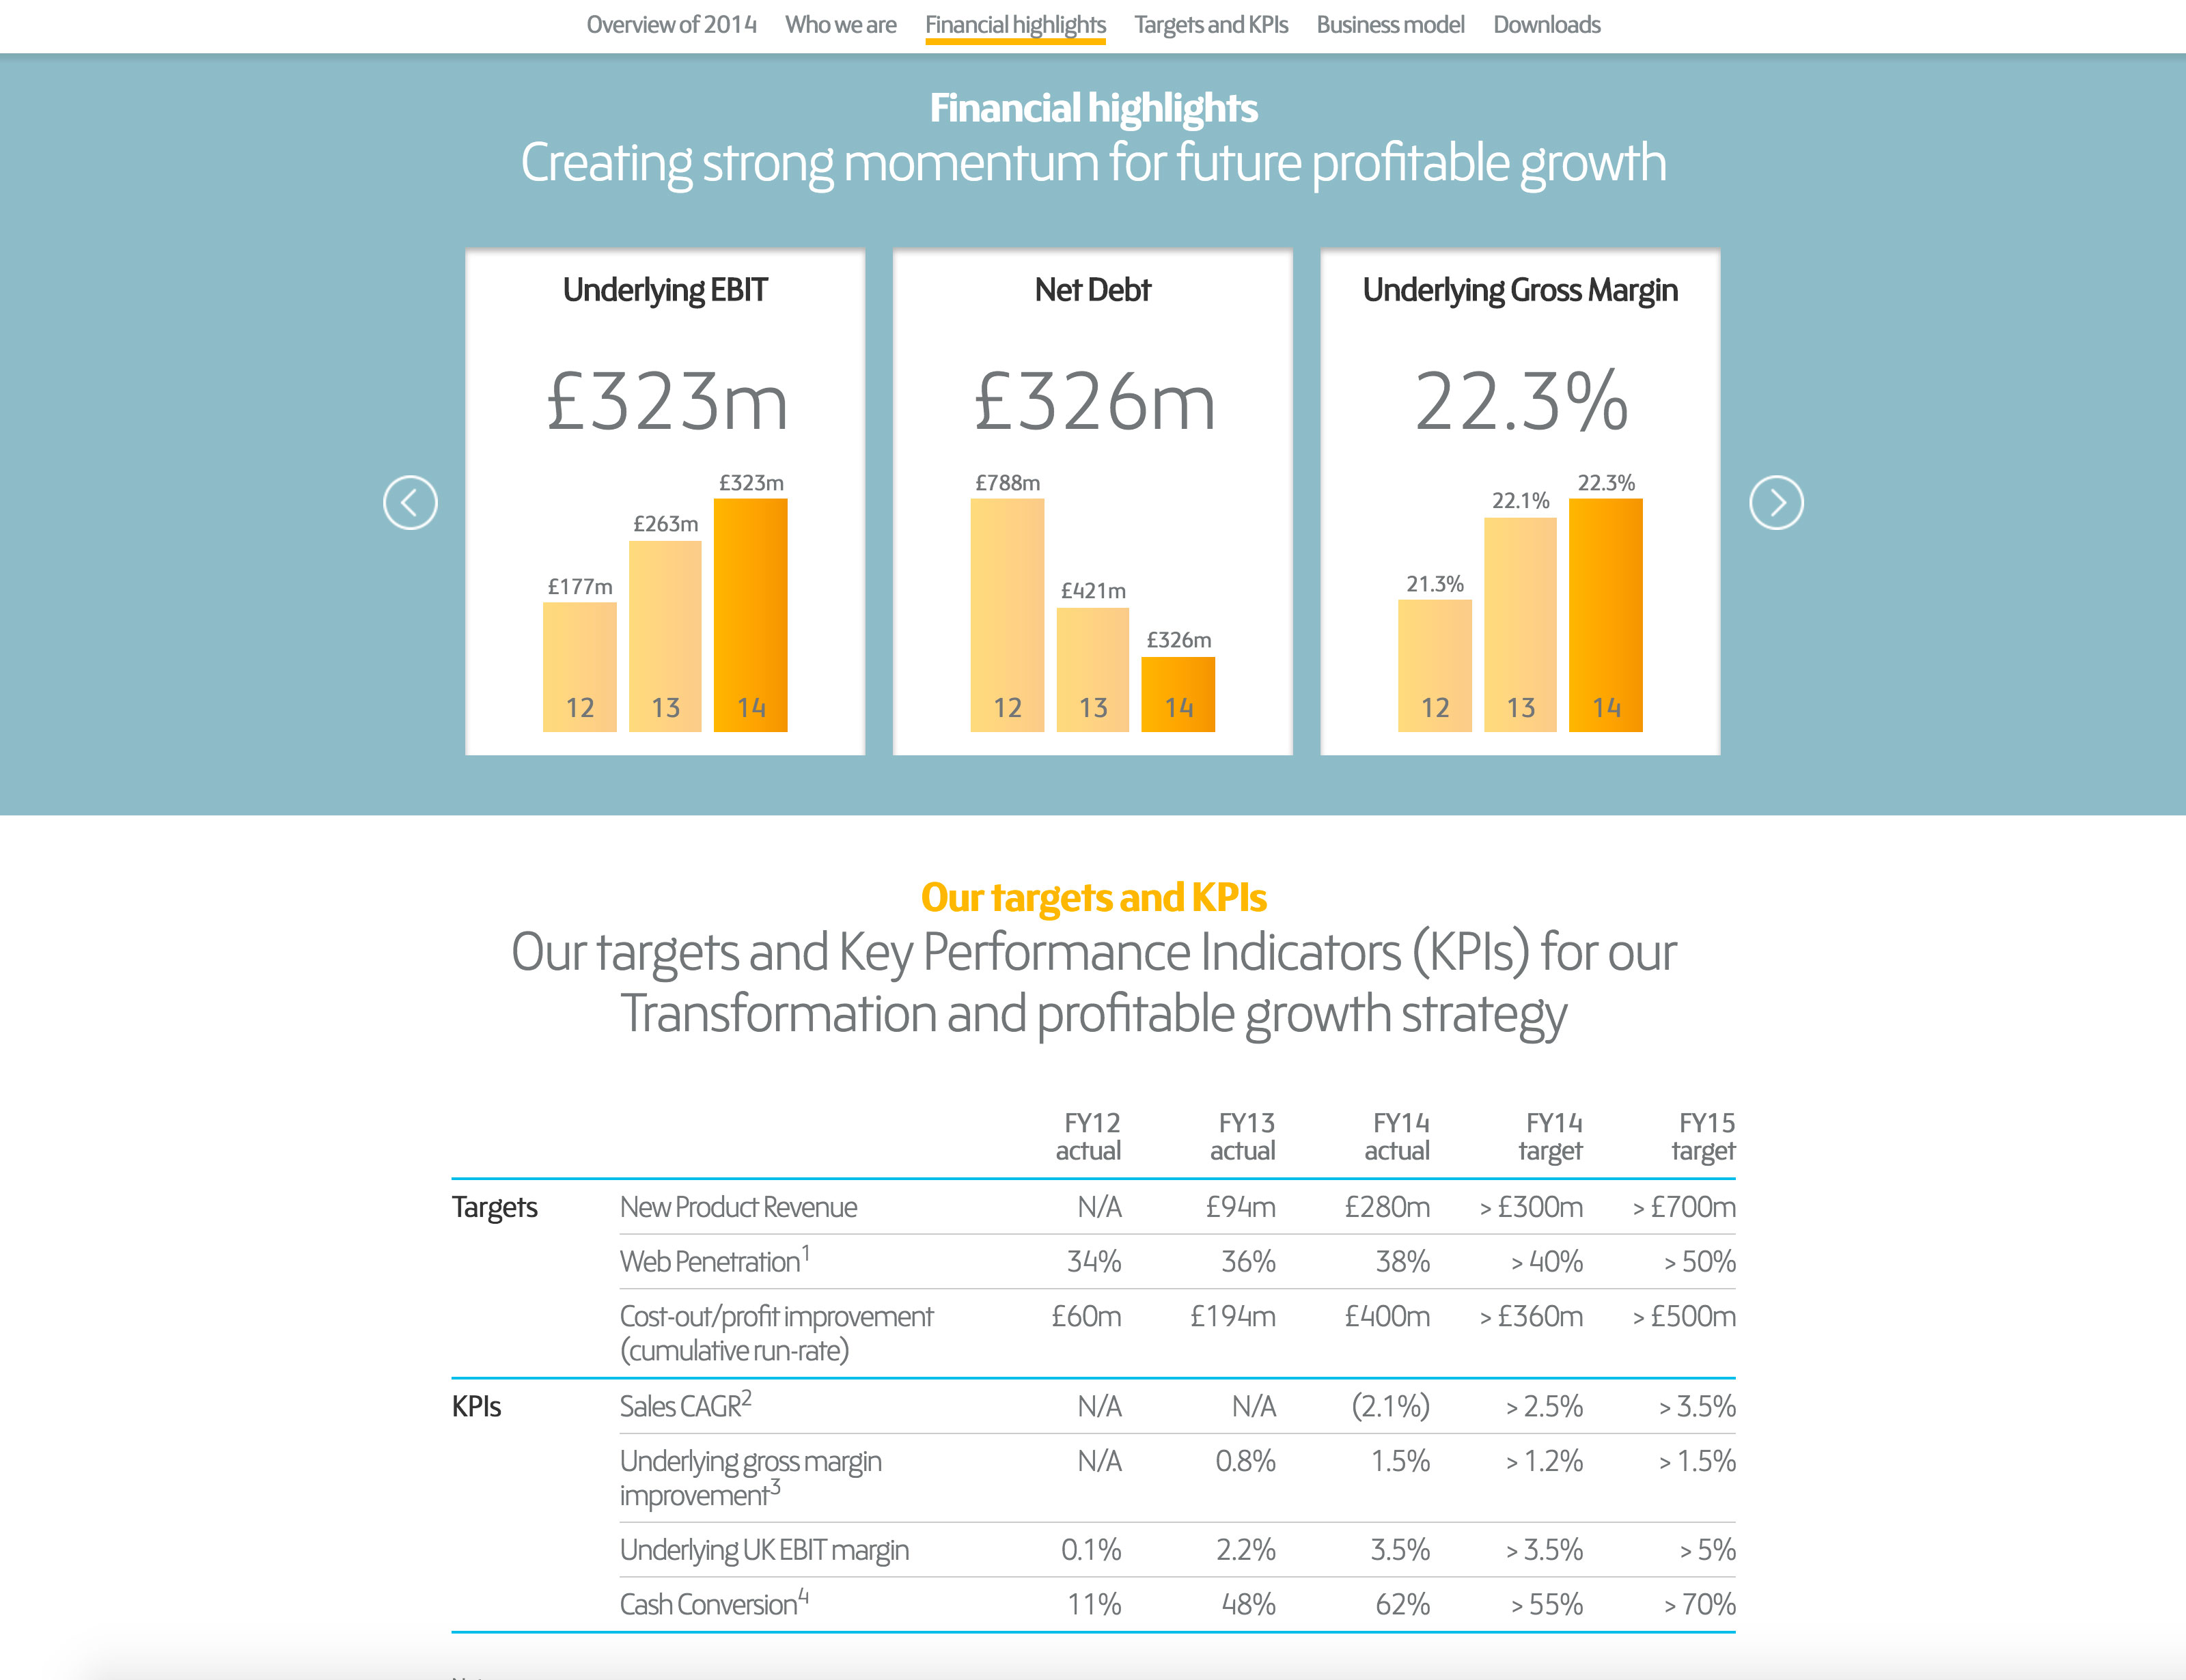 Screenshot of Thomas Cook's 2014 Online Annual Report Financial highlights section on desktop